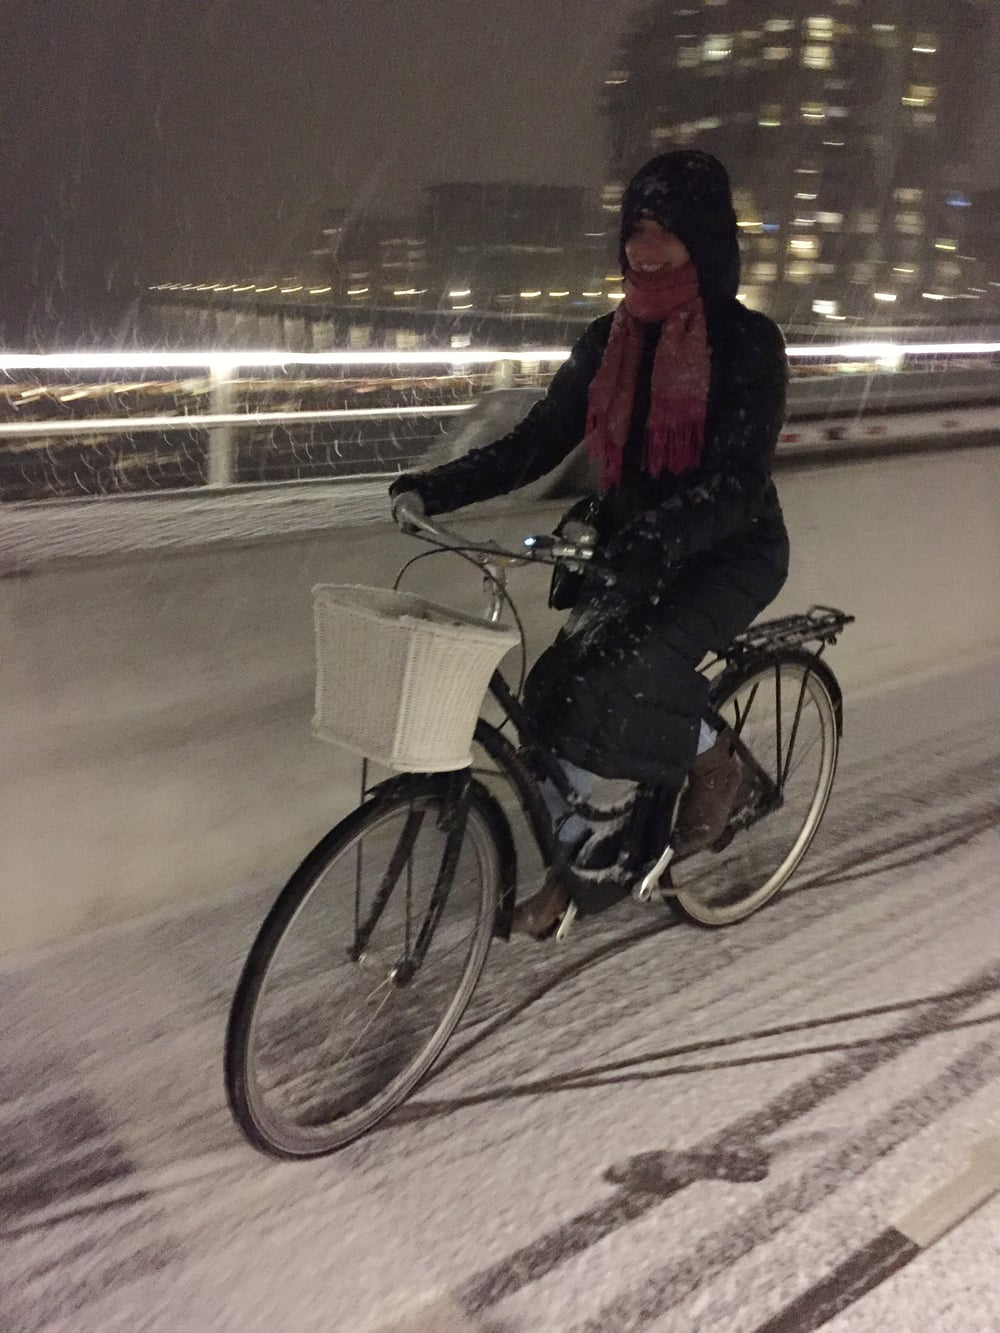 Biking in the snow at night with my sleeping bag coat